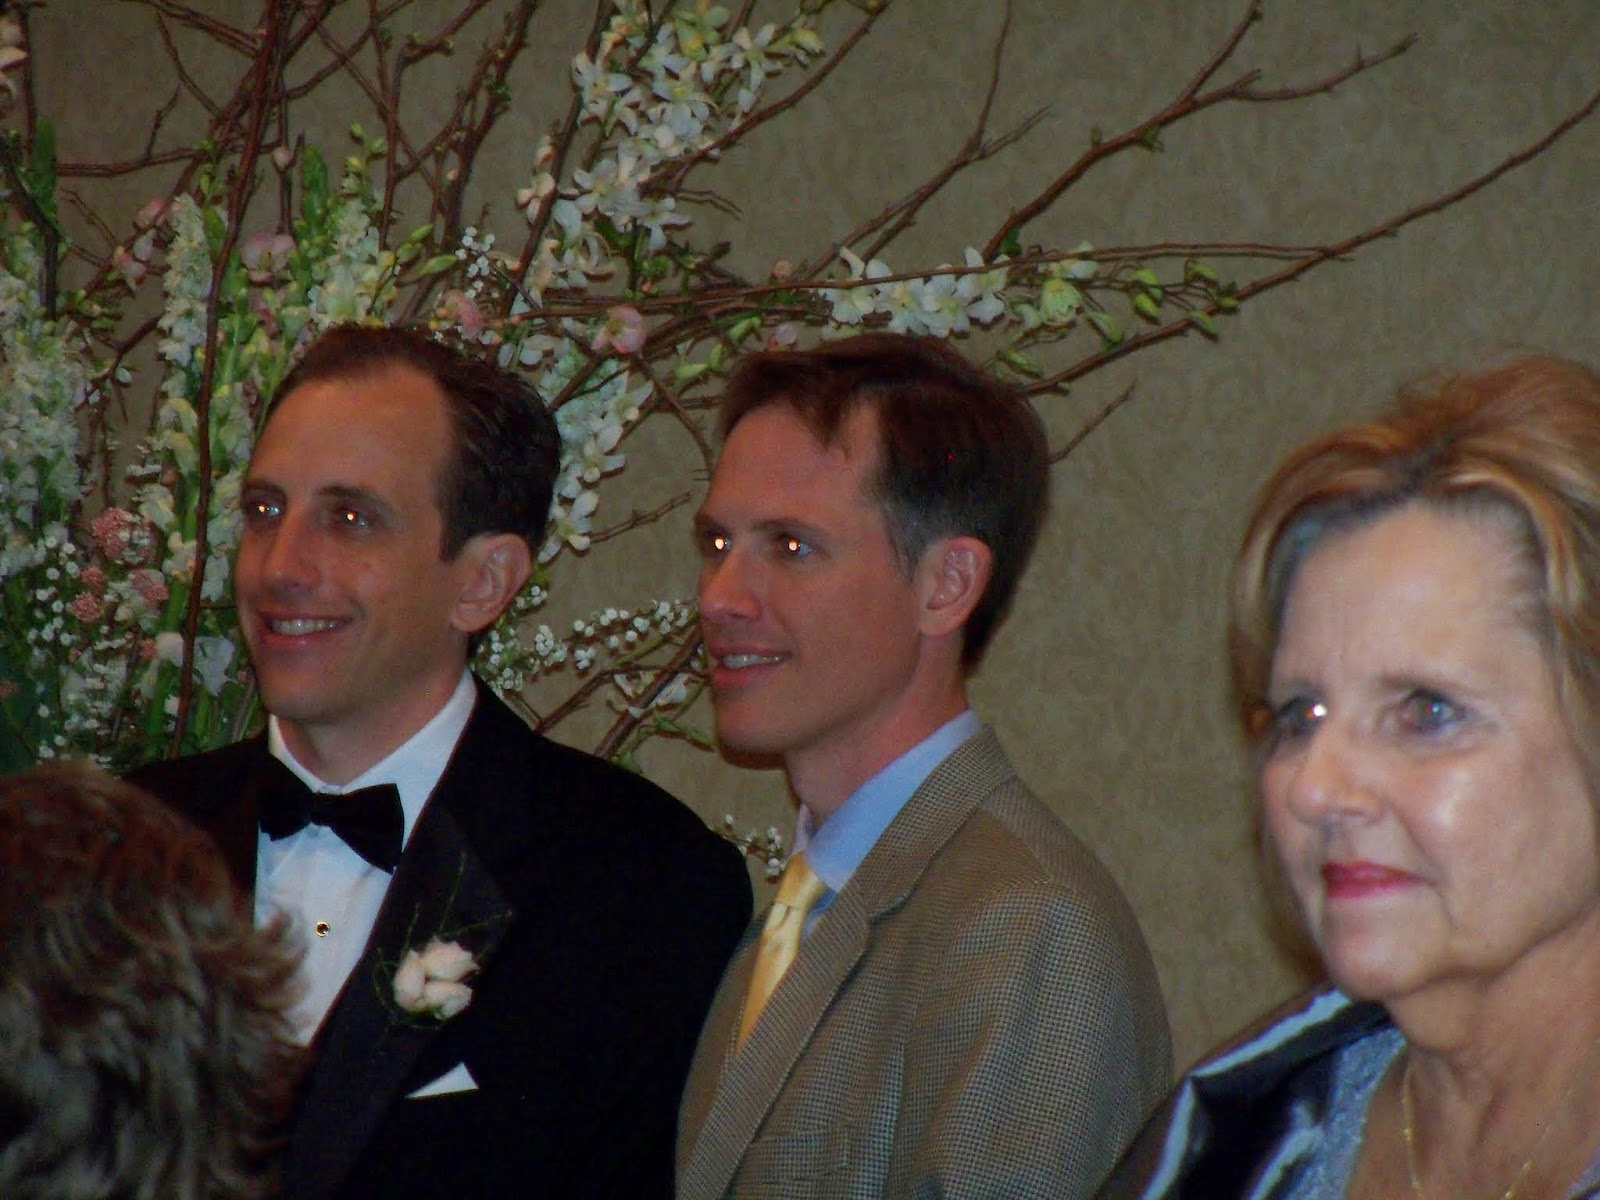 Jason and Amanda Ostroms Wedding - 116_1036.JPG